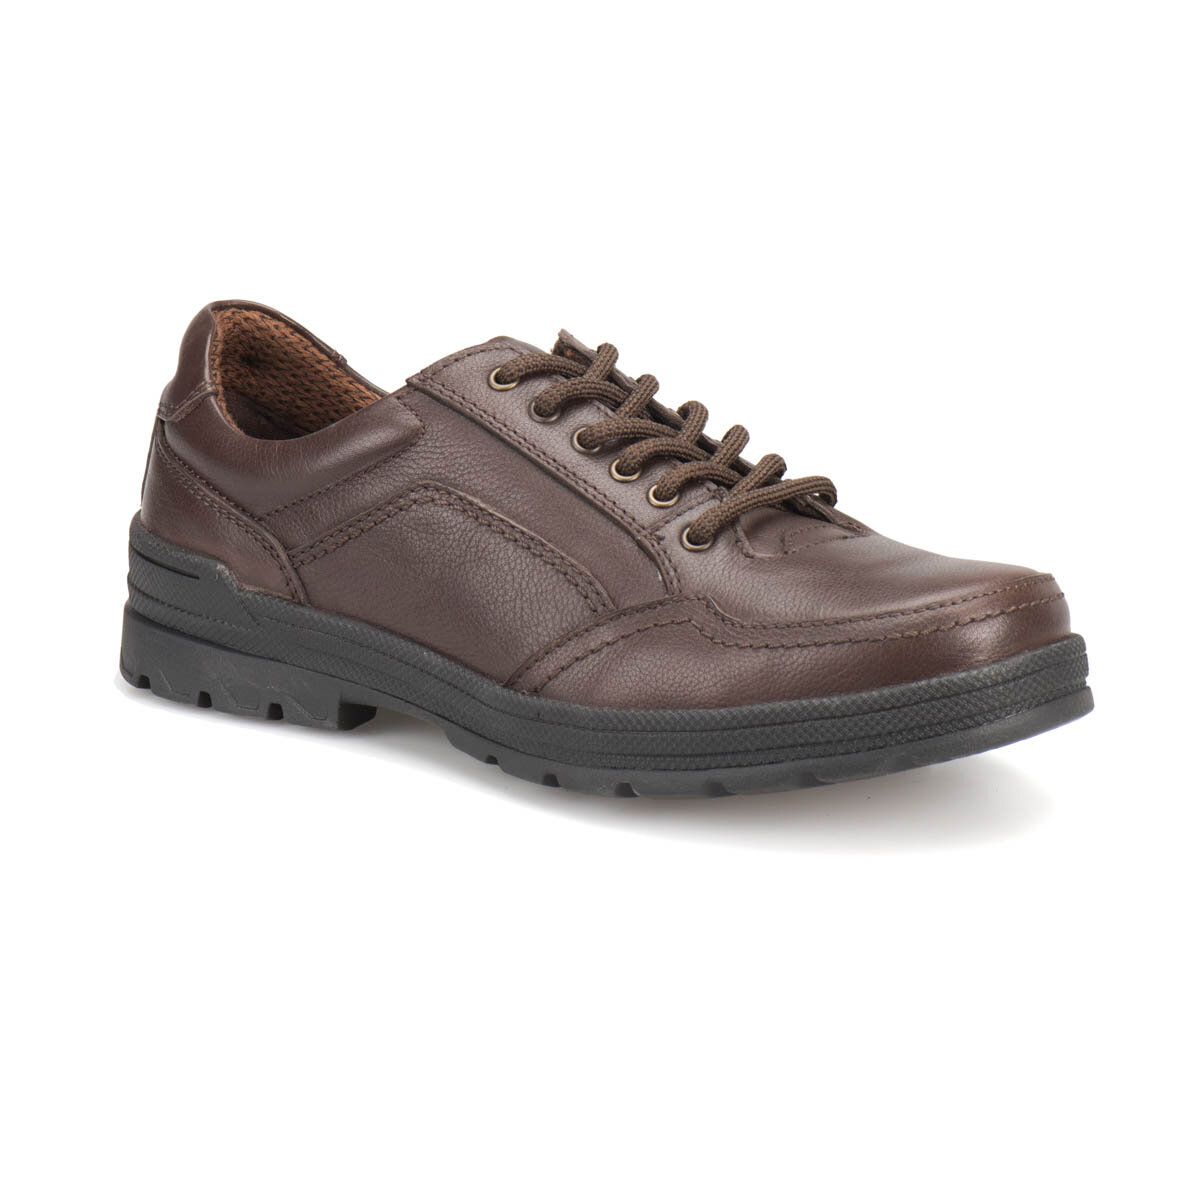 FLO 268 Brown Men 'S Classic Shoes Oxide